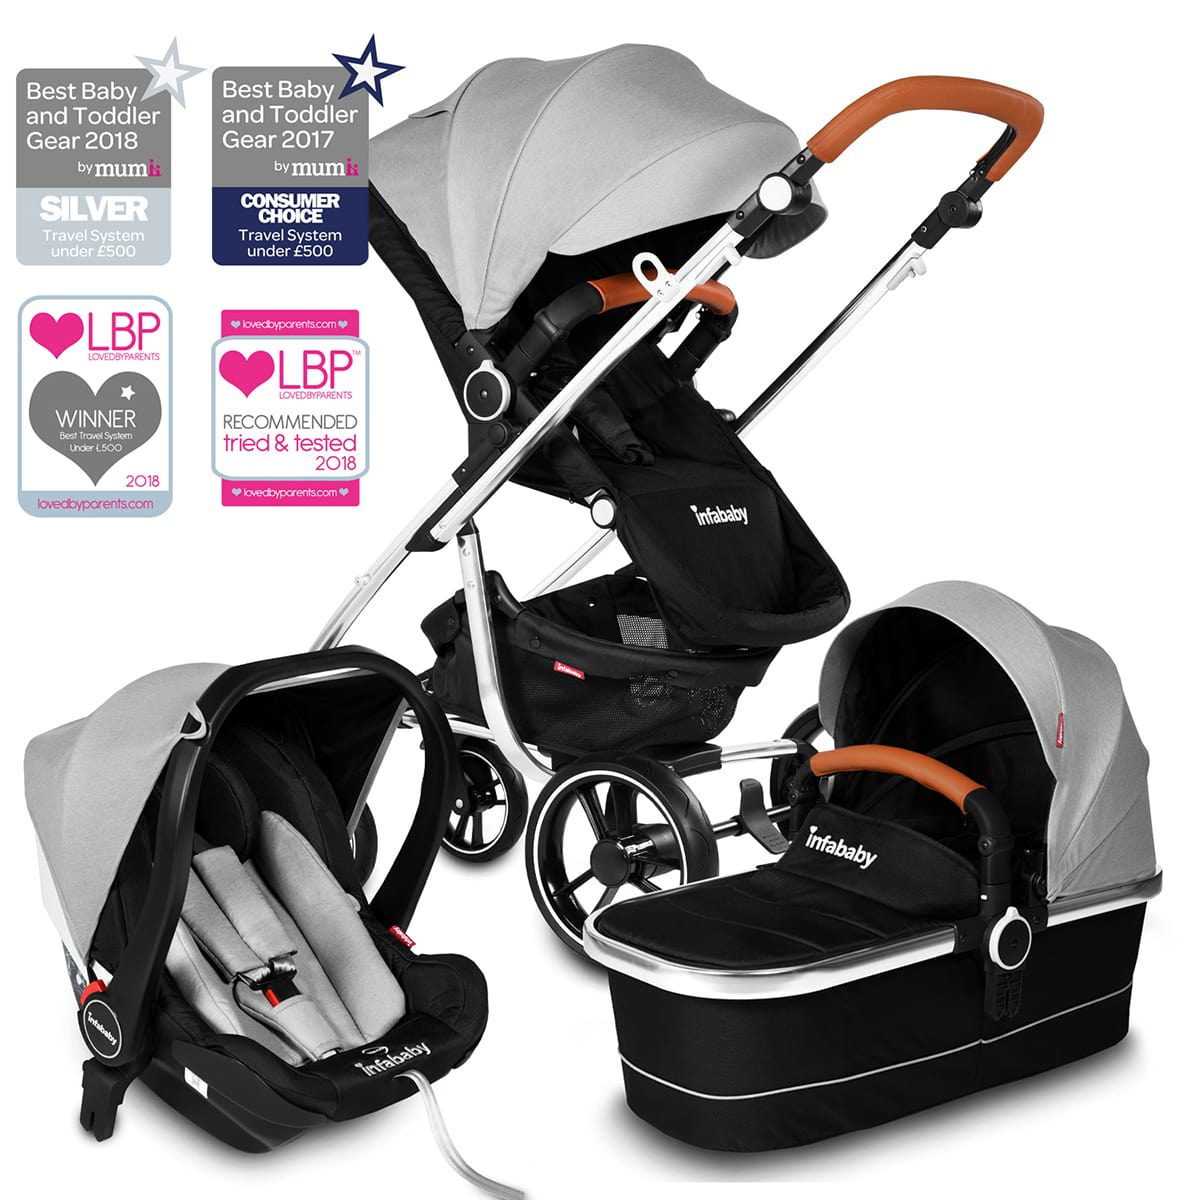 Top Lightweight Travel System Strollers Infababy Moto 3in1 I Size Travel System 2020 Model Soft Grey